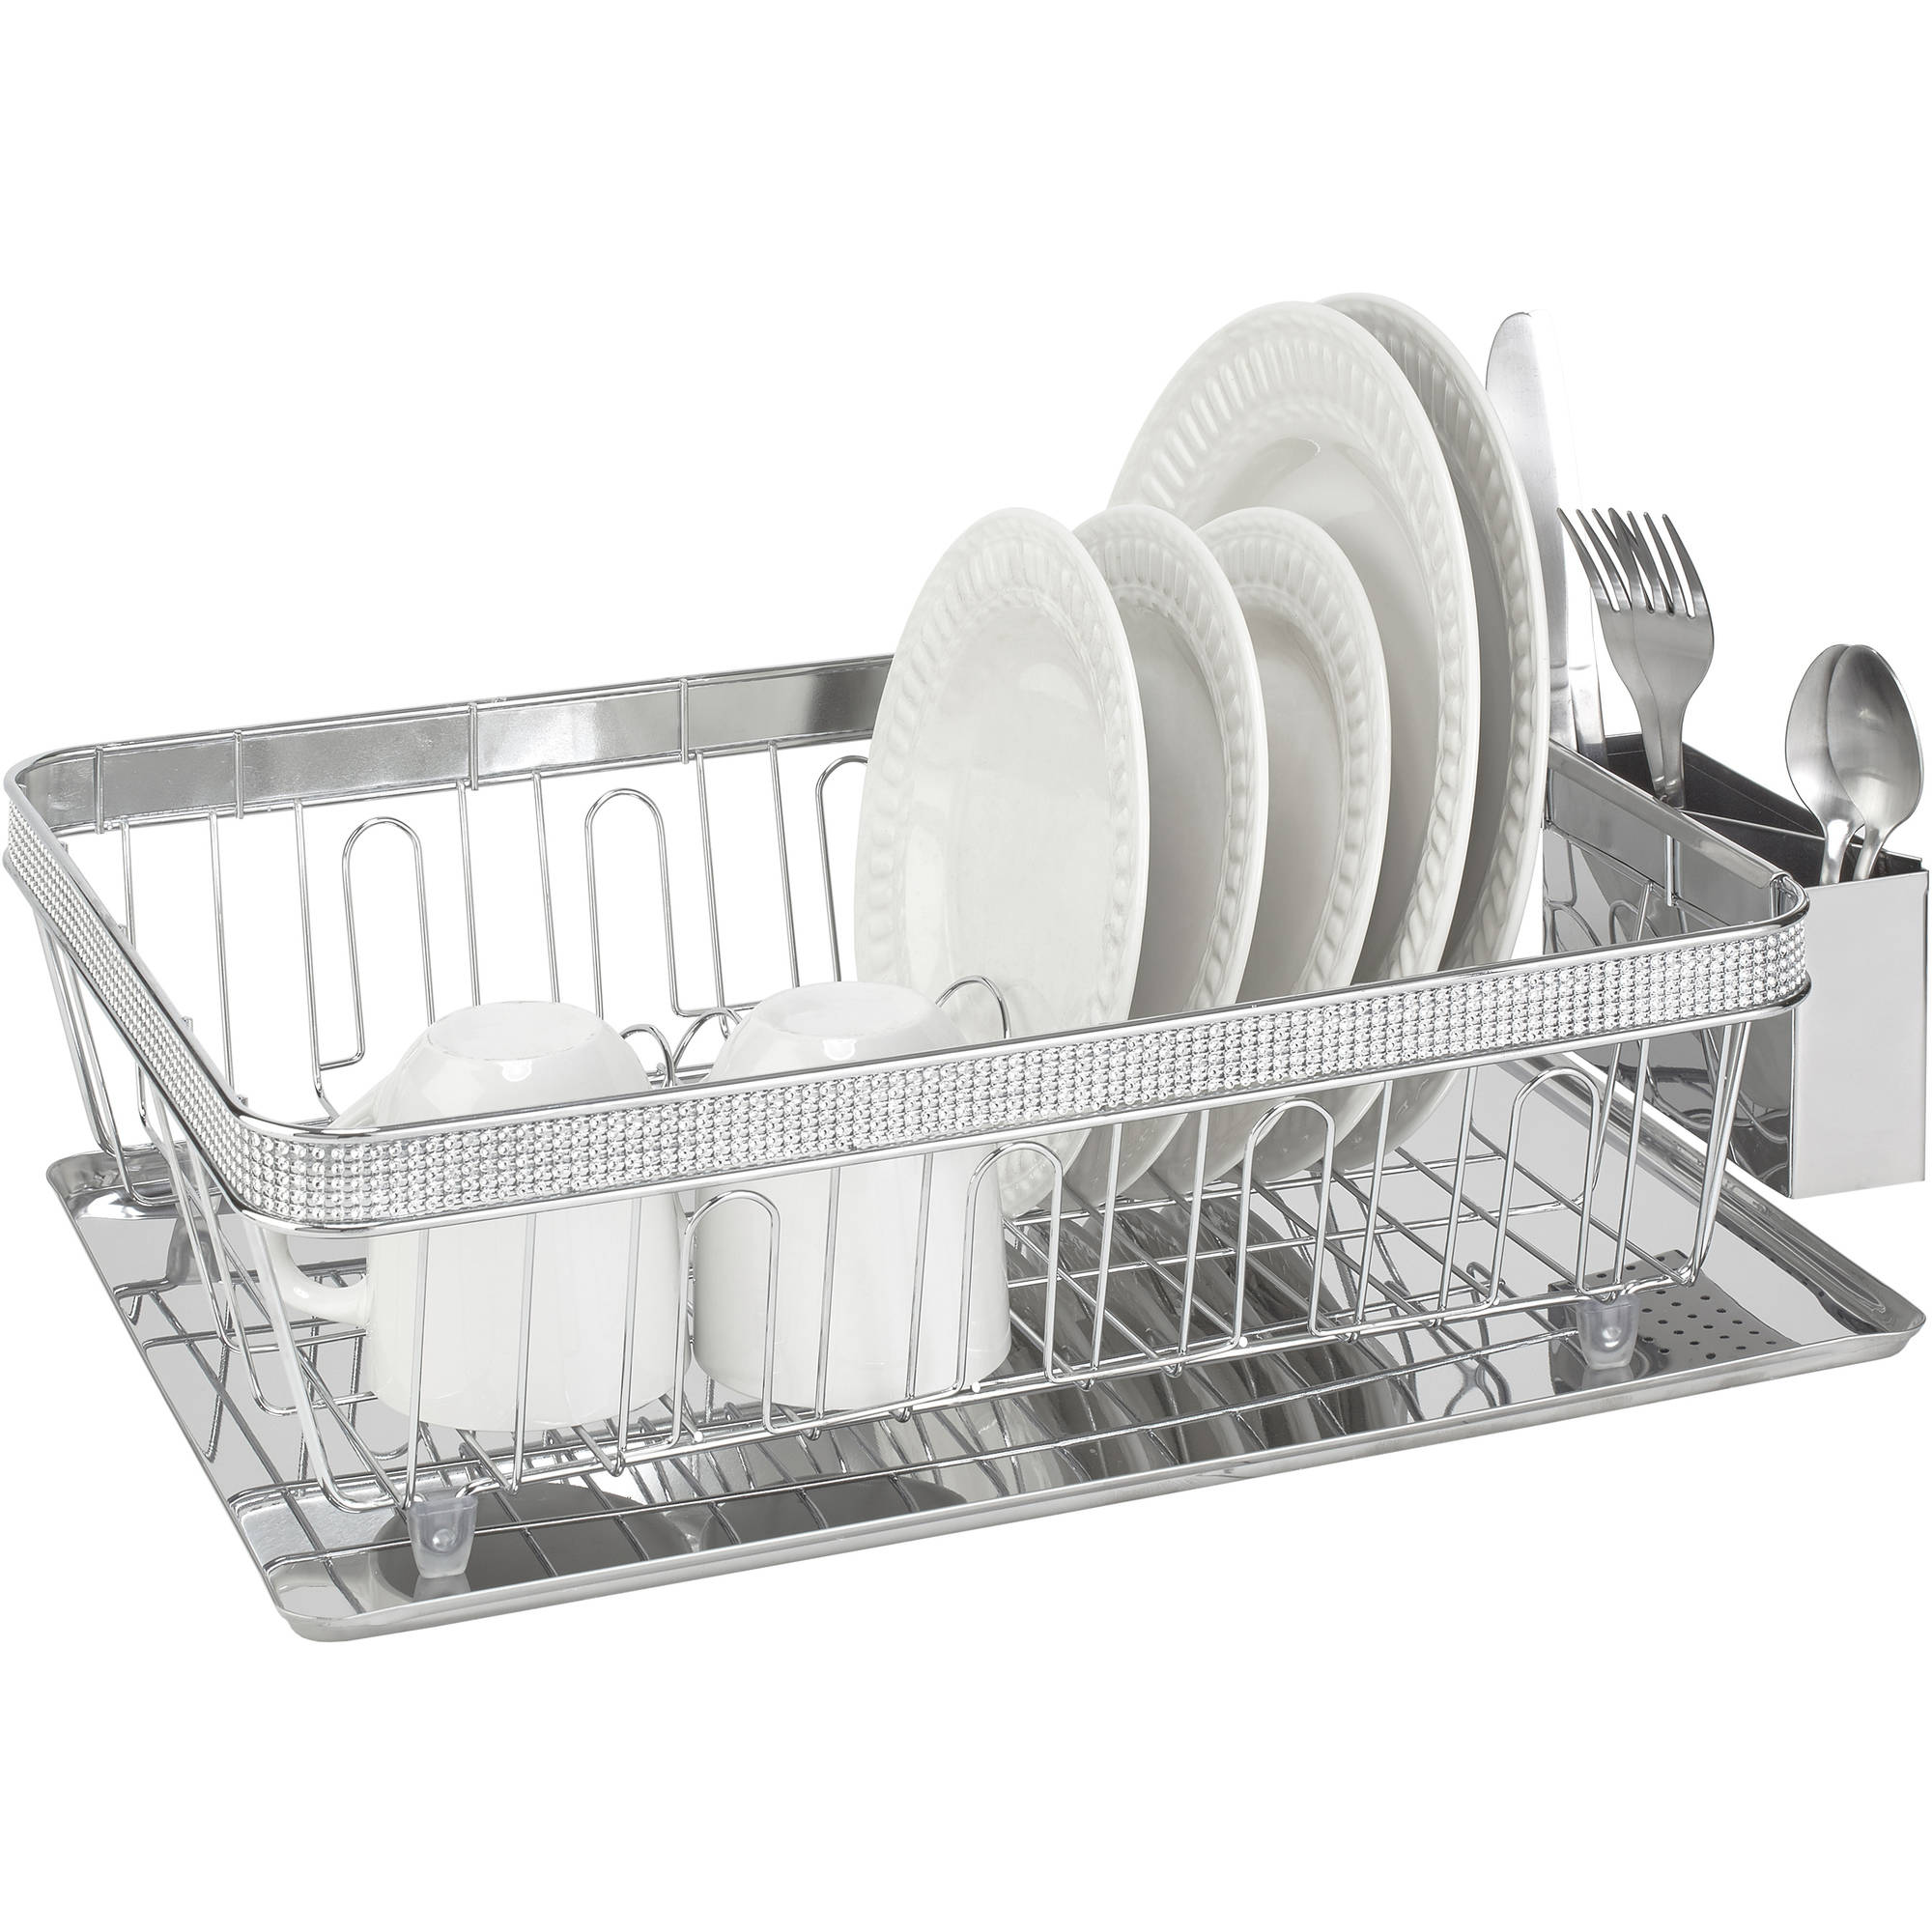 Kitchen Details Dish Rack With Cub And Tray, Chrome Pave Diamond Design